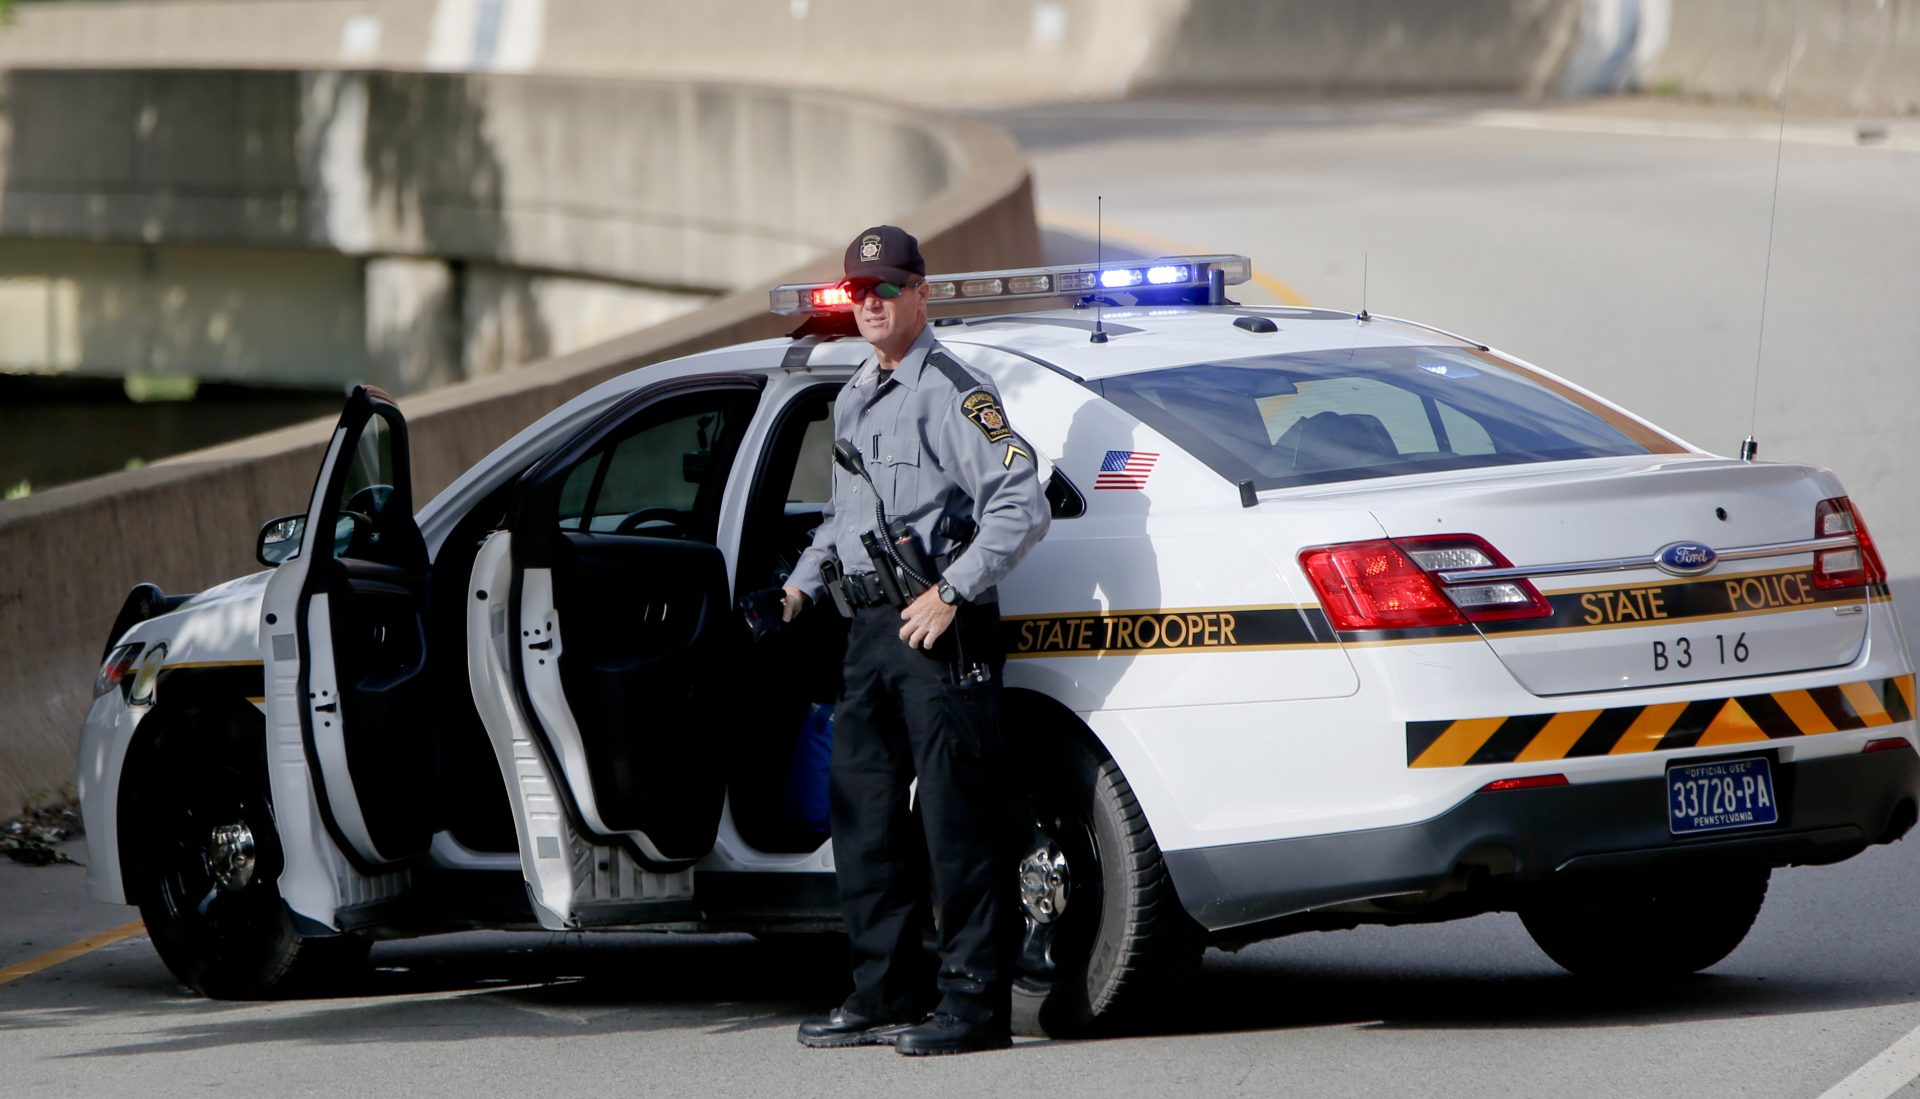 A Pennsylvania State Trooper stands beside his vehicle parked on the entrance ramp to Interstate 376 out of Pittsburgh as protesters block an intersection in downtown Pittsburgh, on Tuesday, June 26, 2018.